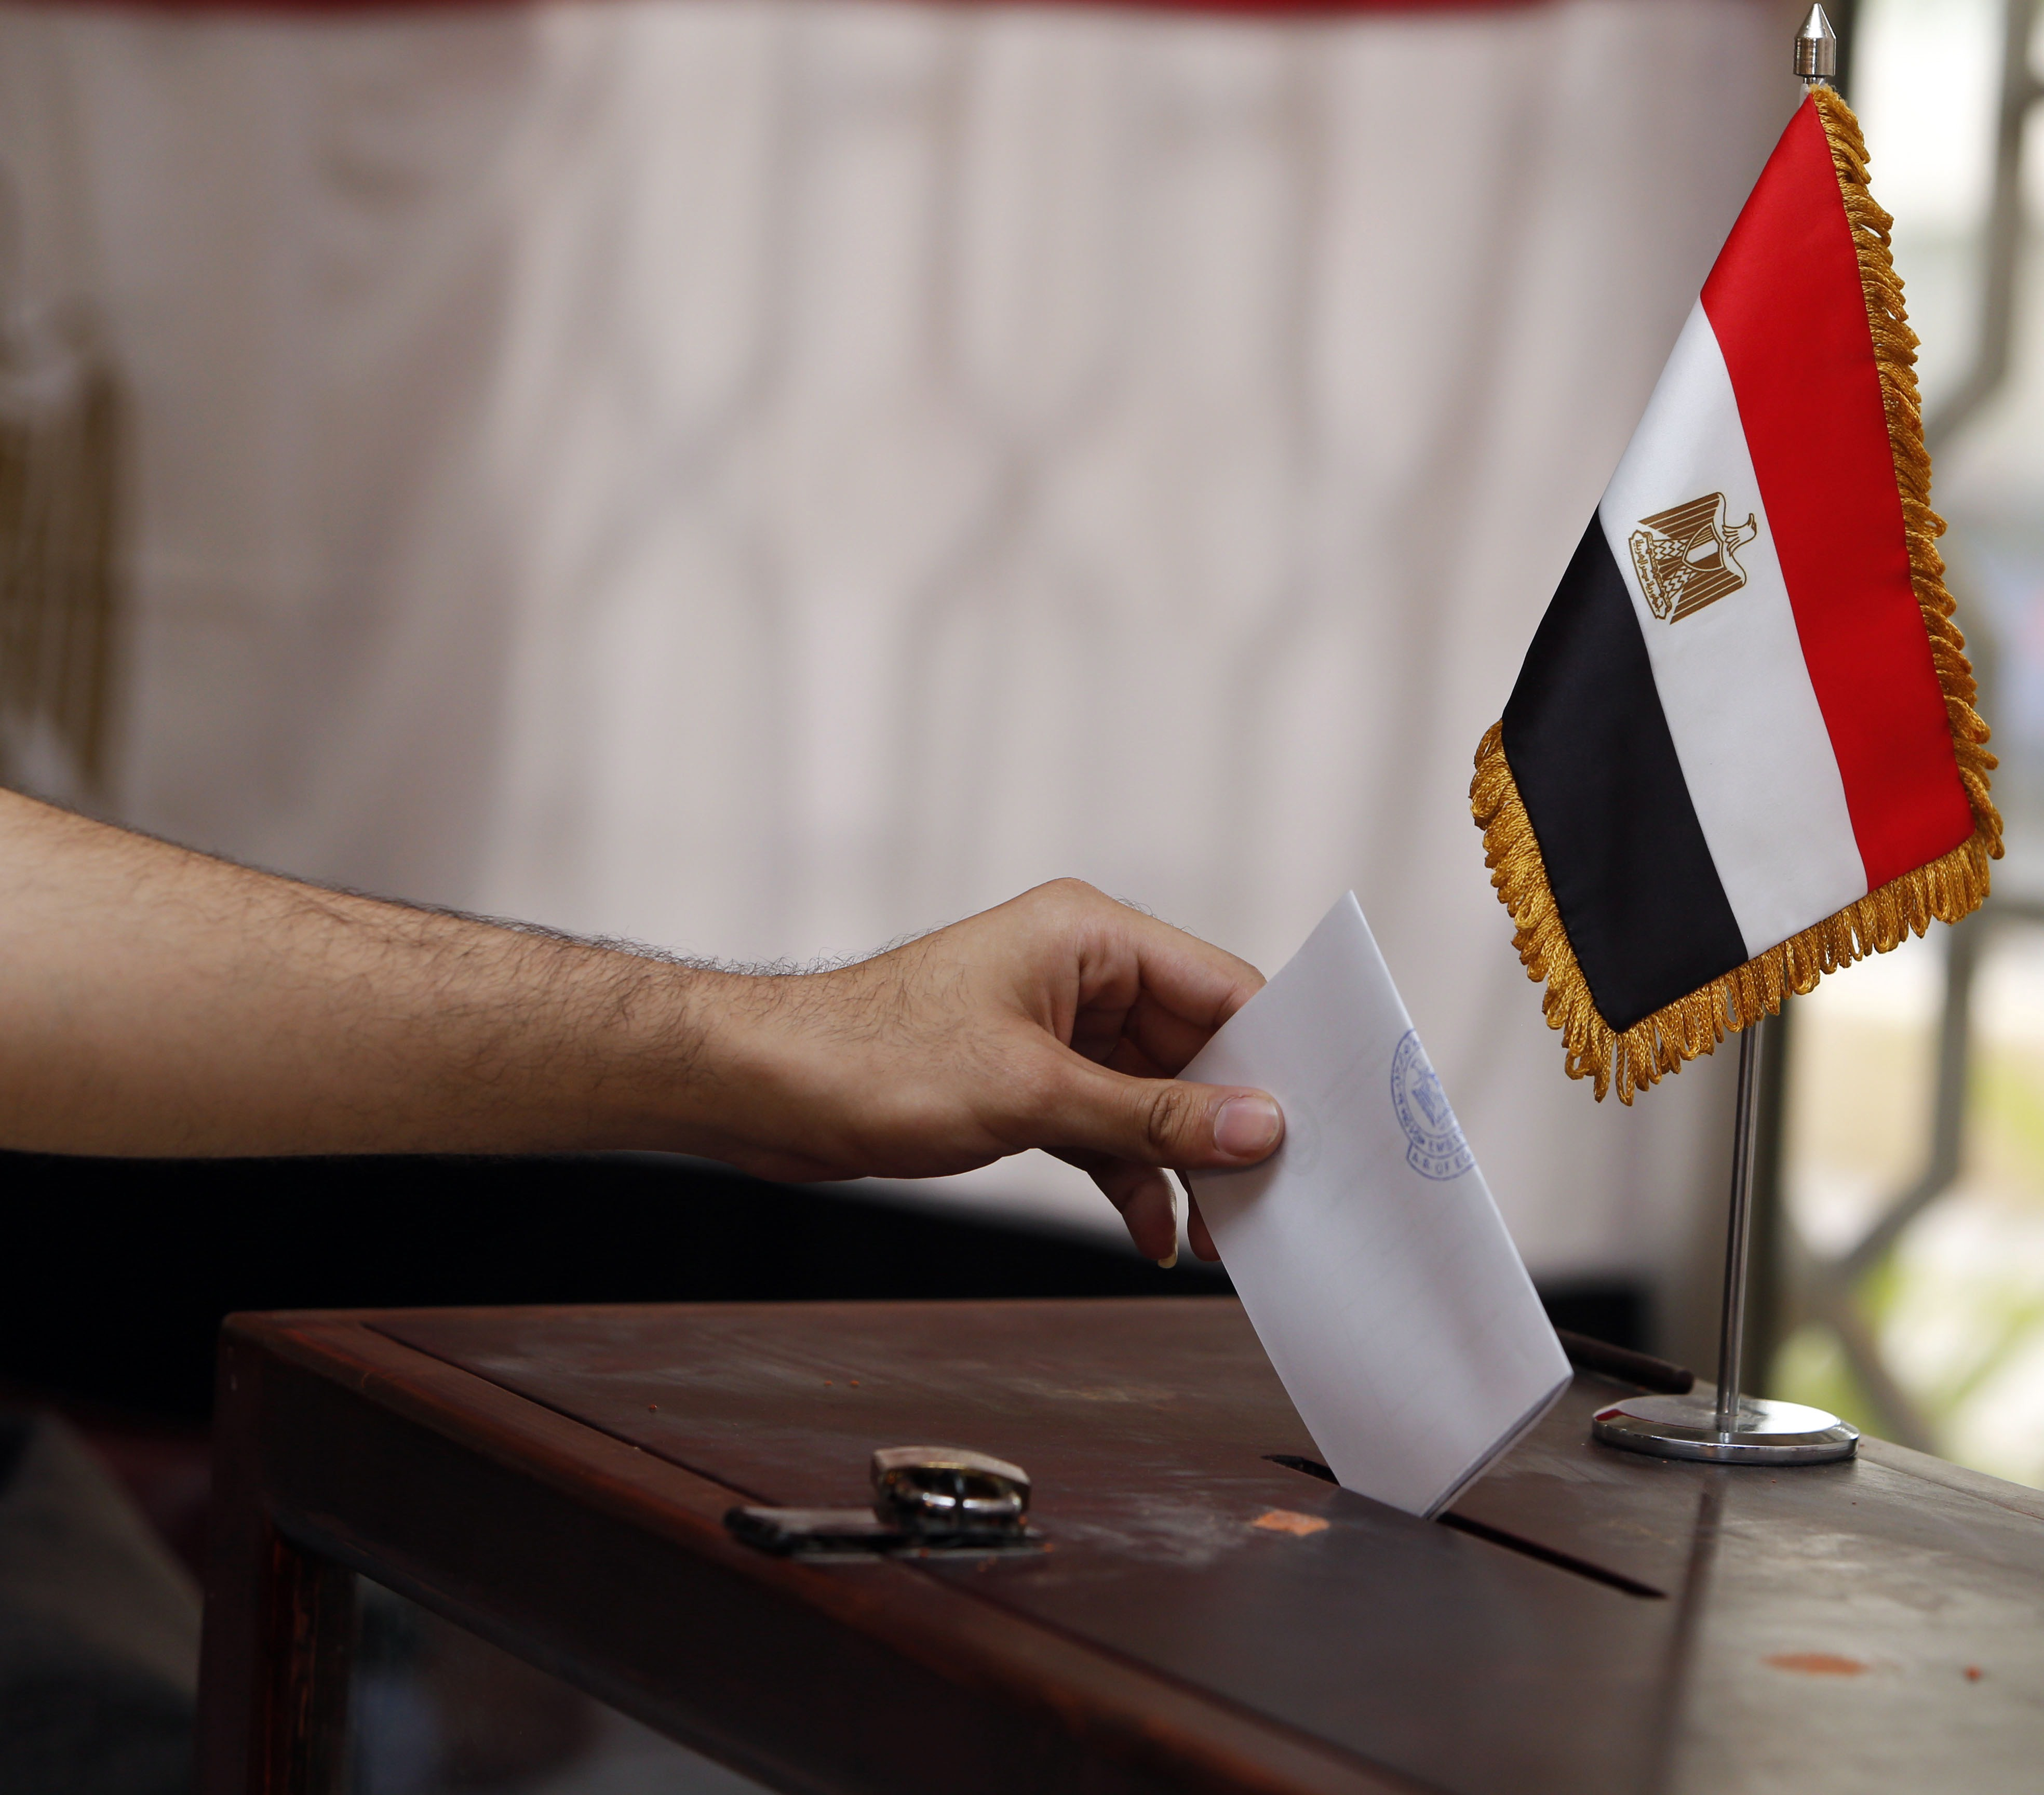 The first stage of Egypt's parliamentary election is set to take place on 22 and 23 March, the second on 26 and 27 April. For Egyptians residing abroad the first stage will be on 21 and 22 March and the second on 25 and 26 April (AFP FILE PHOTO / MOHAMMED MAHJOUB)